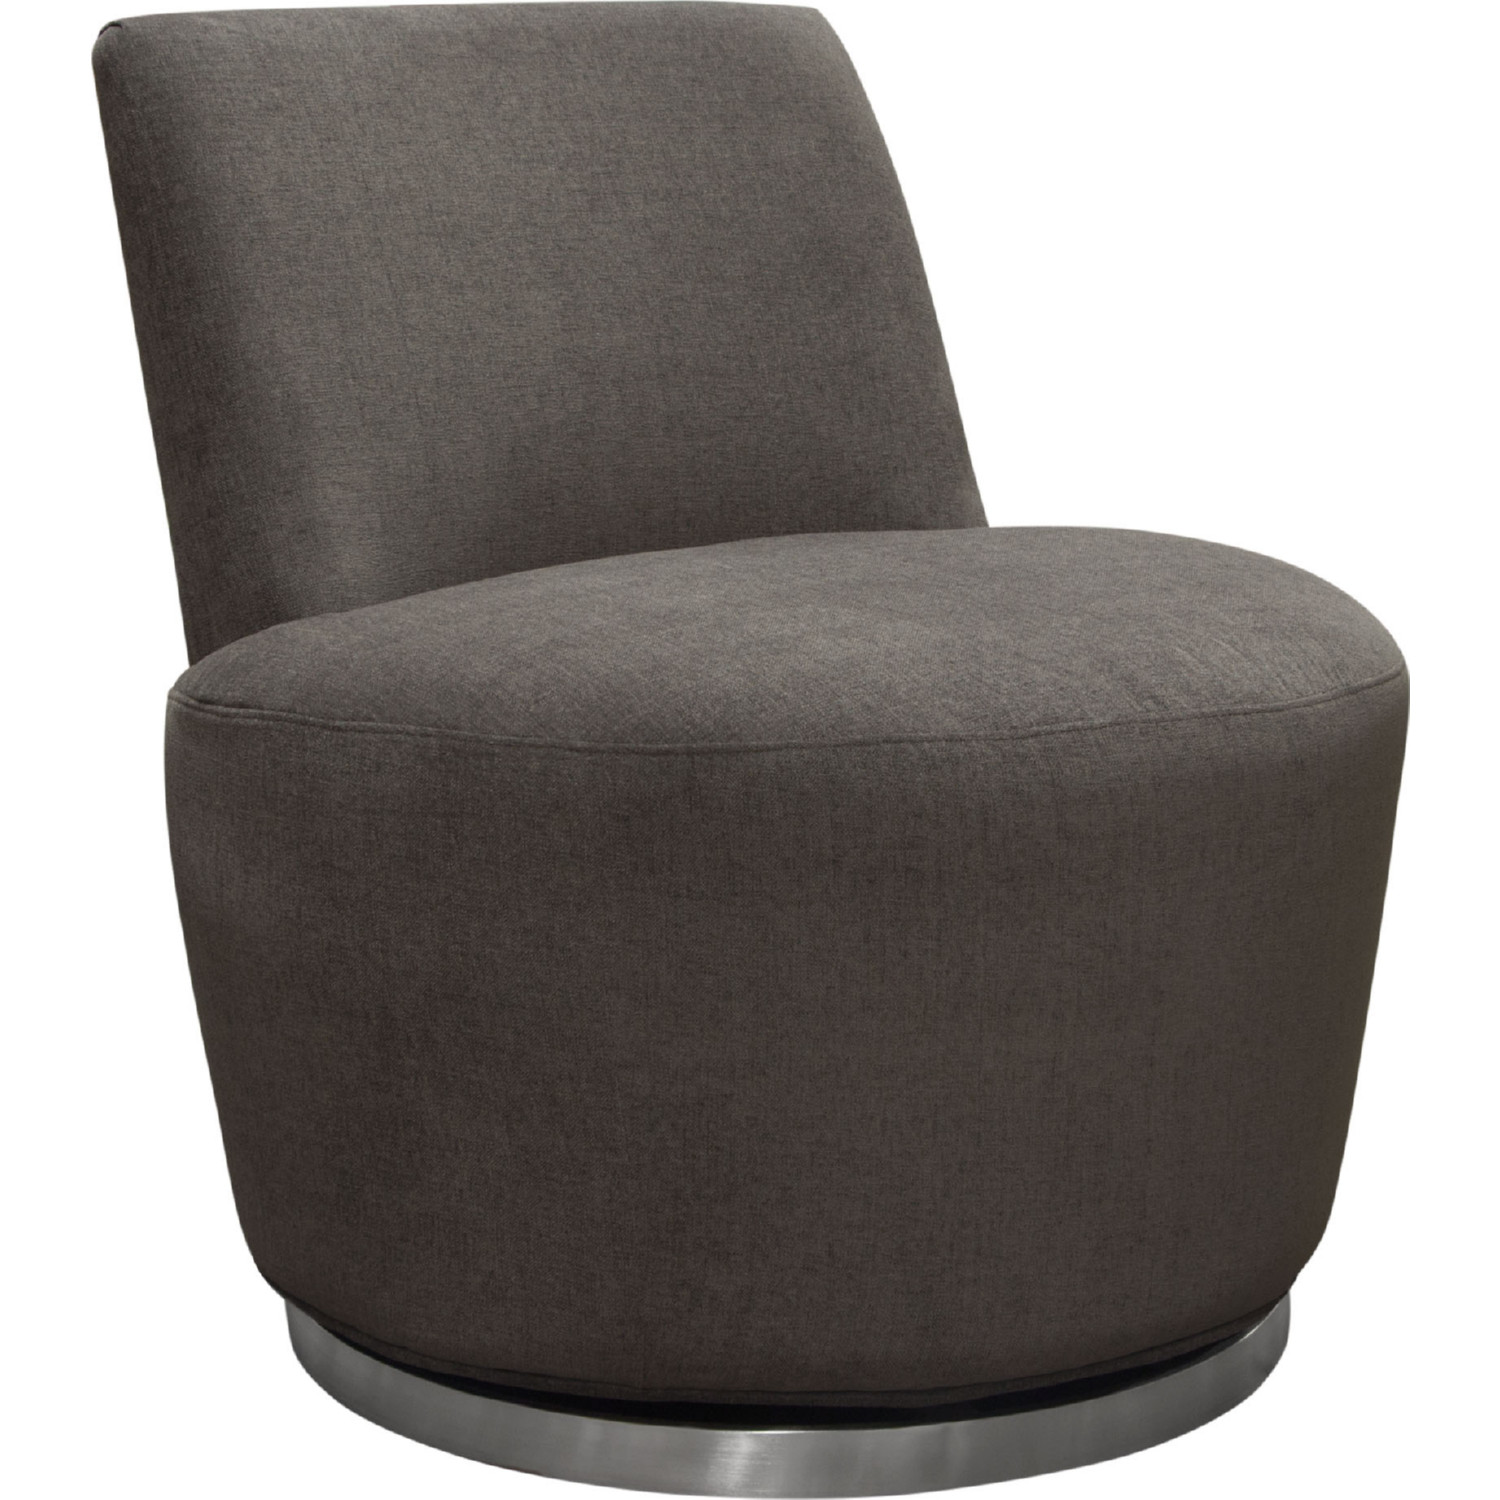 Stupendous Blake Swivel Armless Chair In Iron Fabric On Brushed Stainless By Diamond Sofa Uwap Interior Chair Design Uwaporg